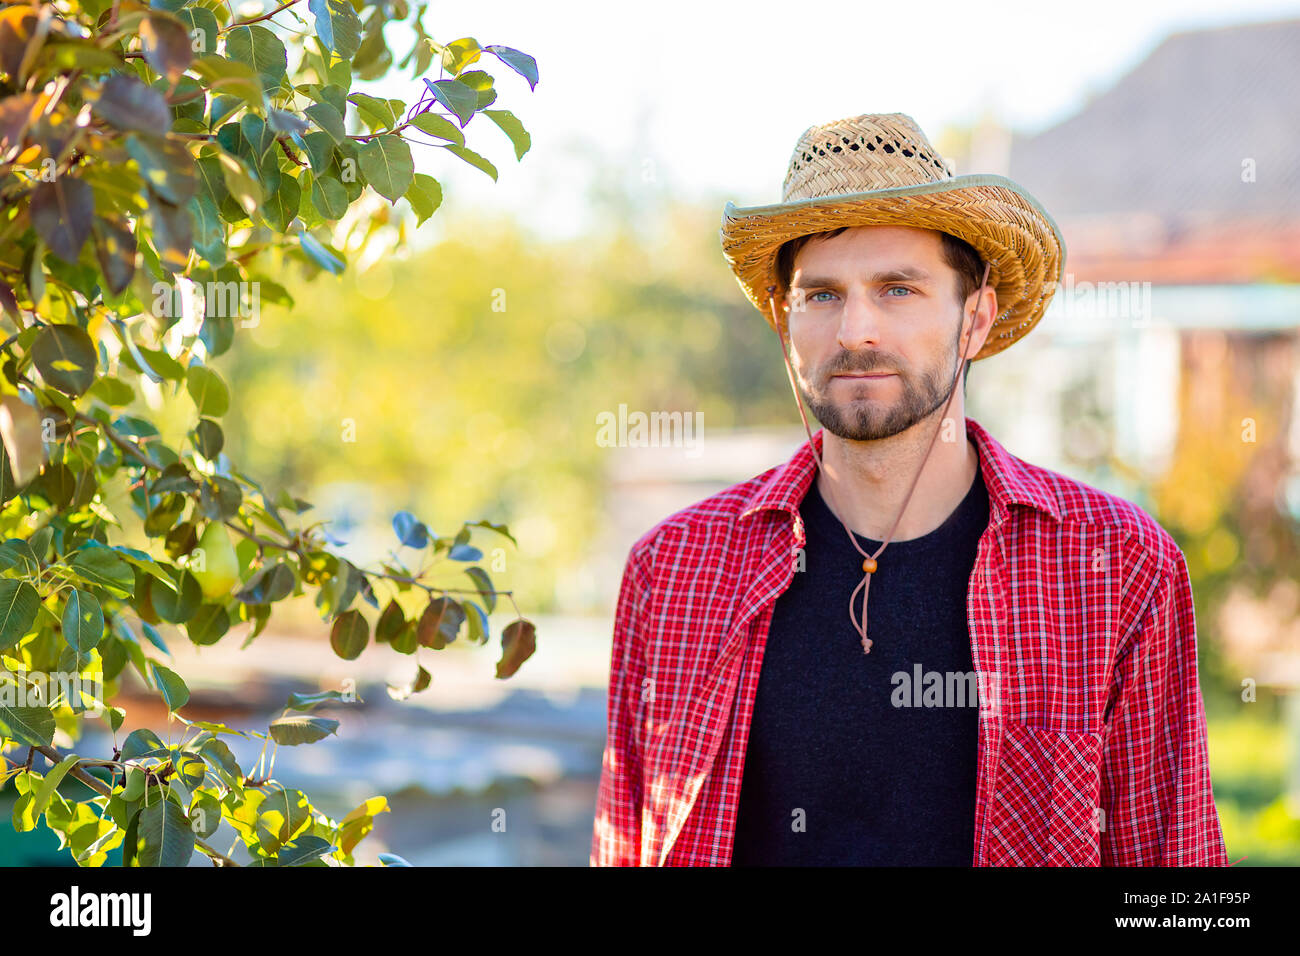 Handsome cowboy, portrait of a farmer in his garden. A man in a cowboy hat. Stock Photo